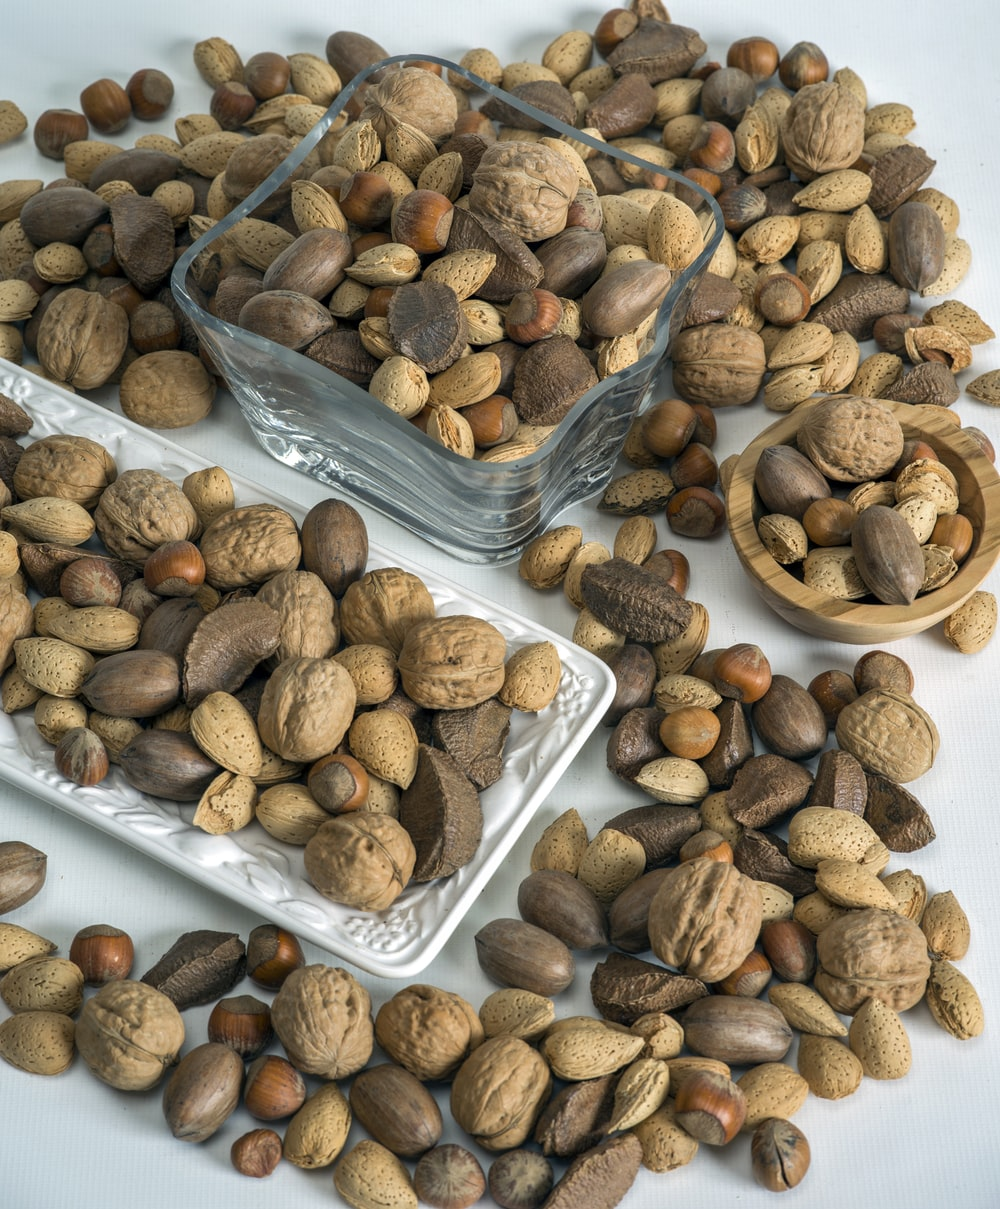 brown and black nuts on clear plastic container